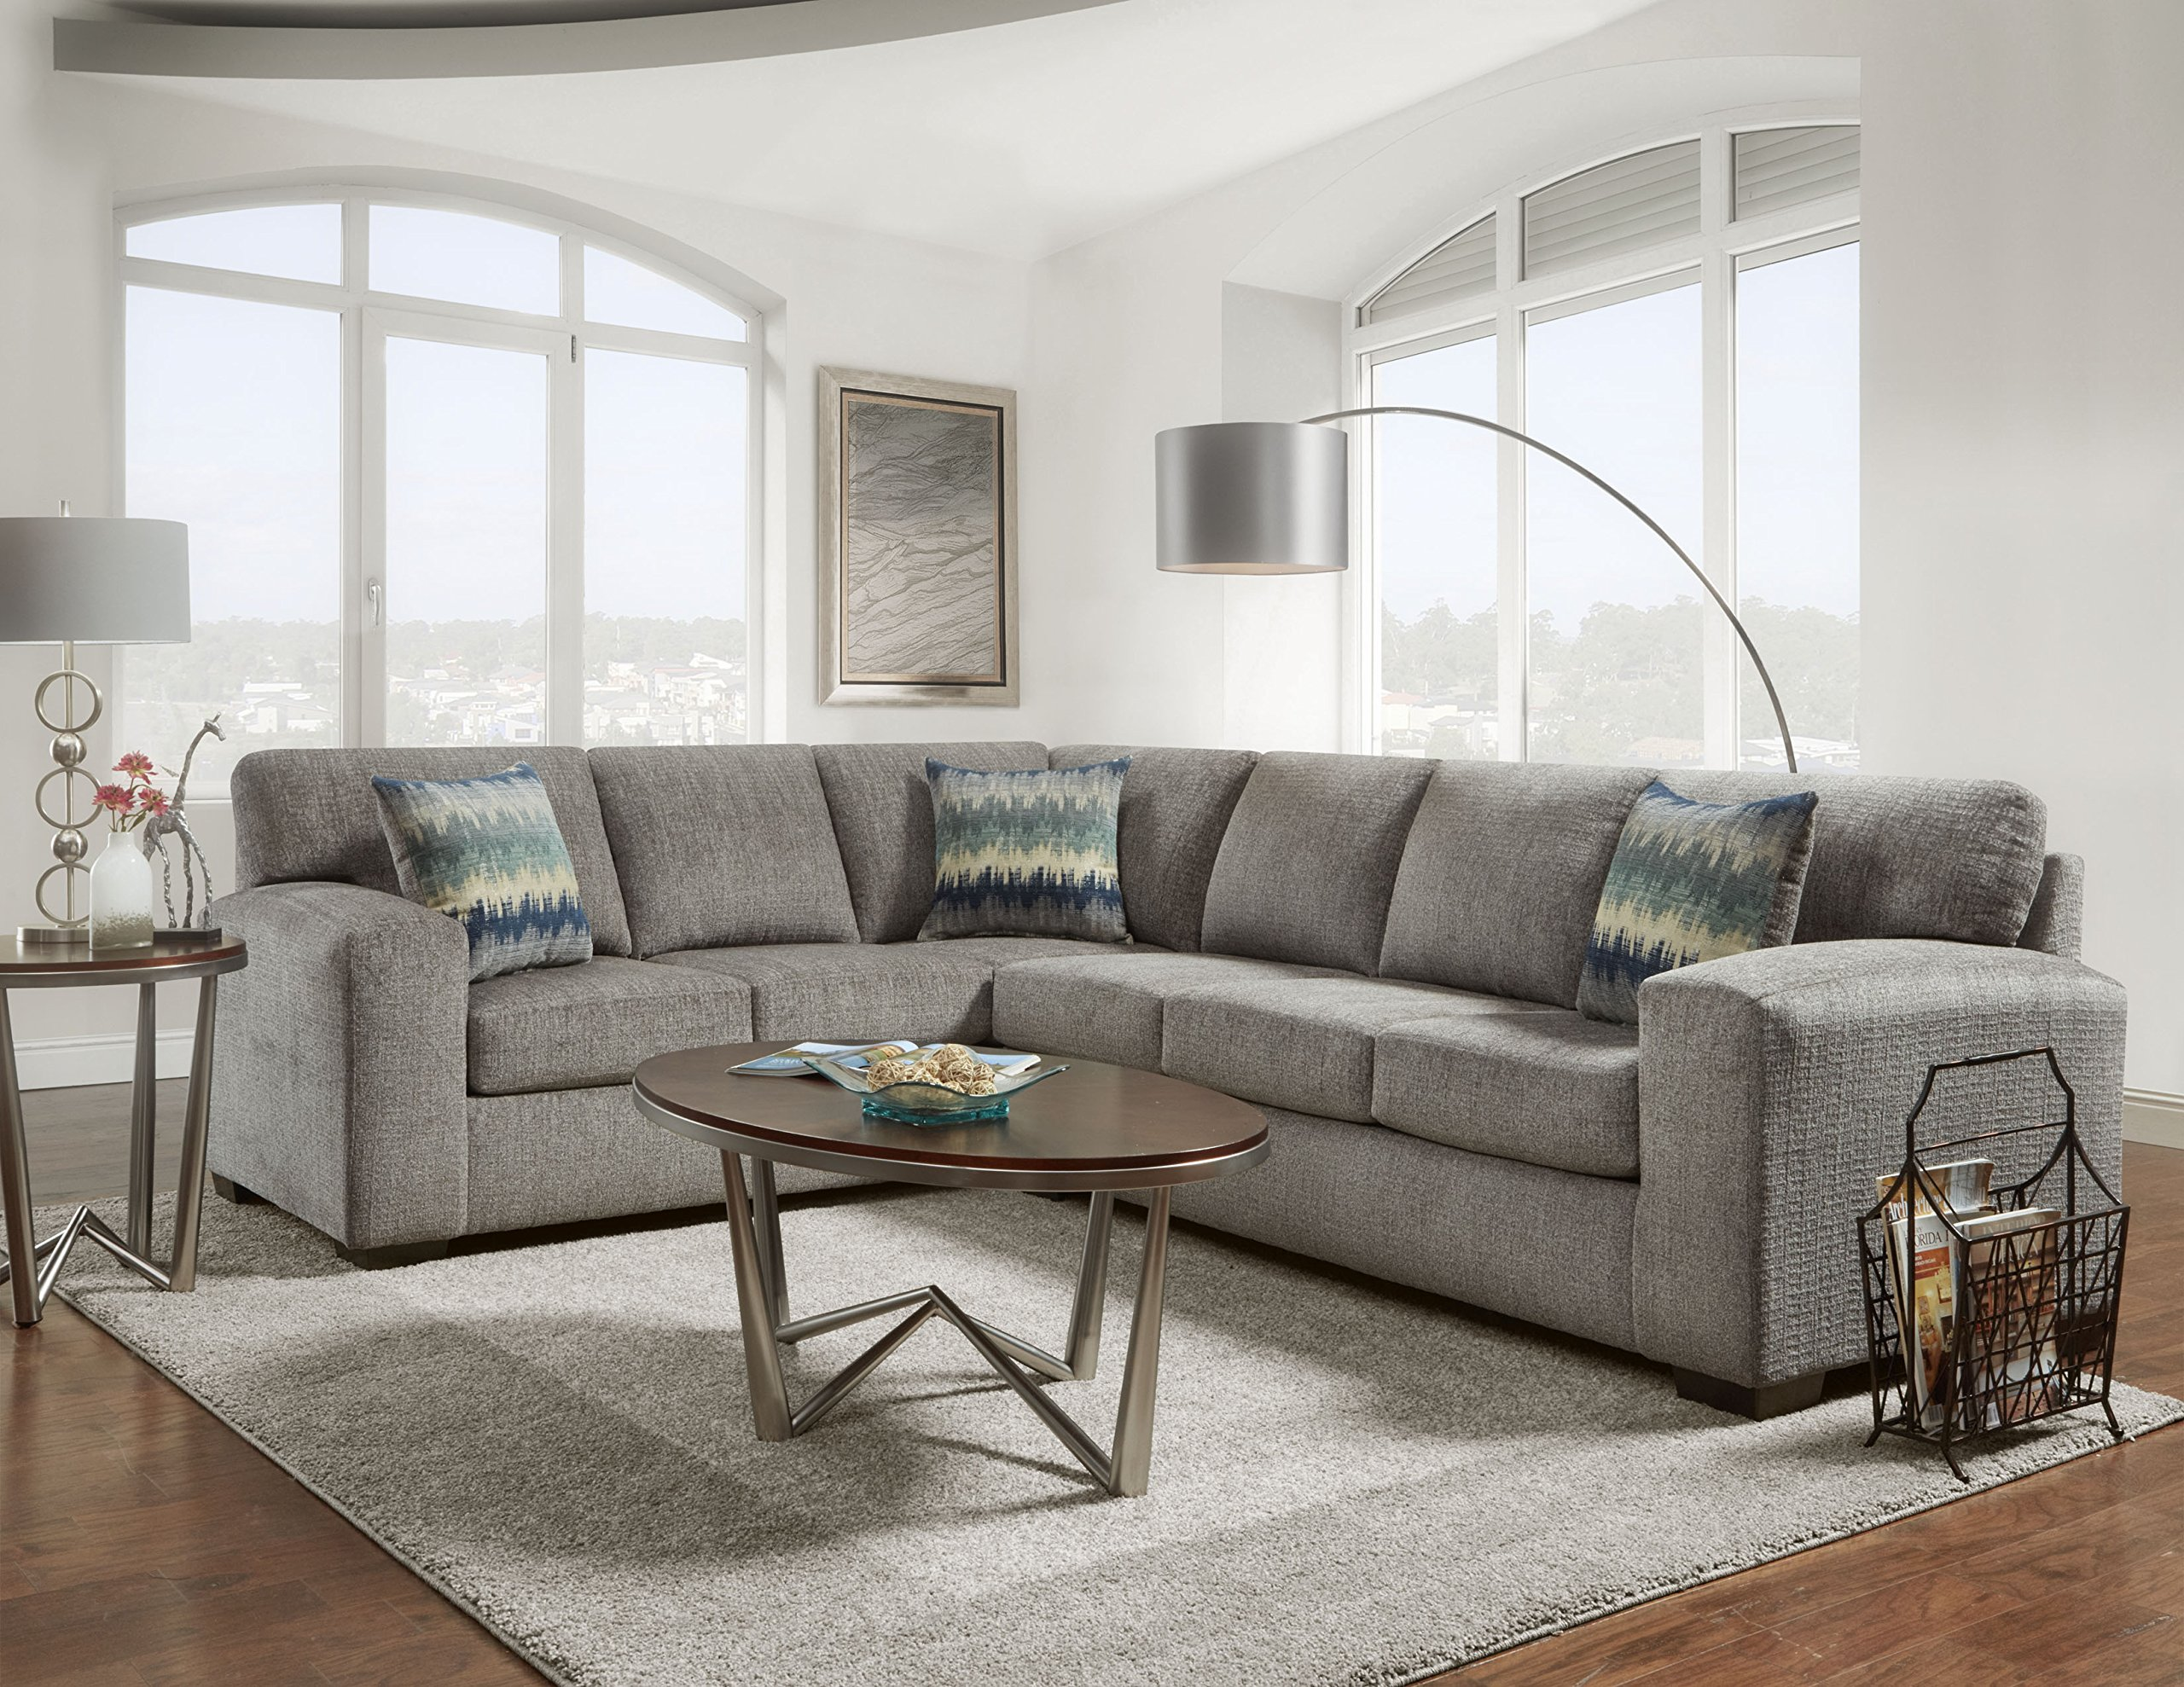 Roundhill Furniture Bergen Fabric Sectional Sofa by Roundhill Furniture